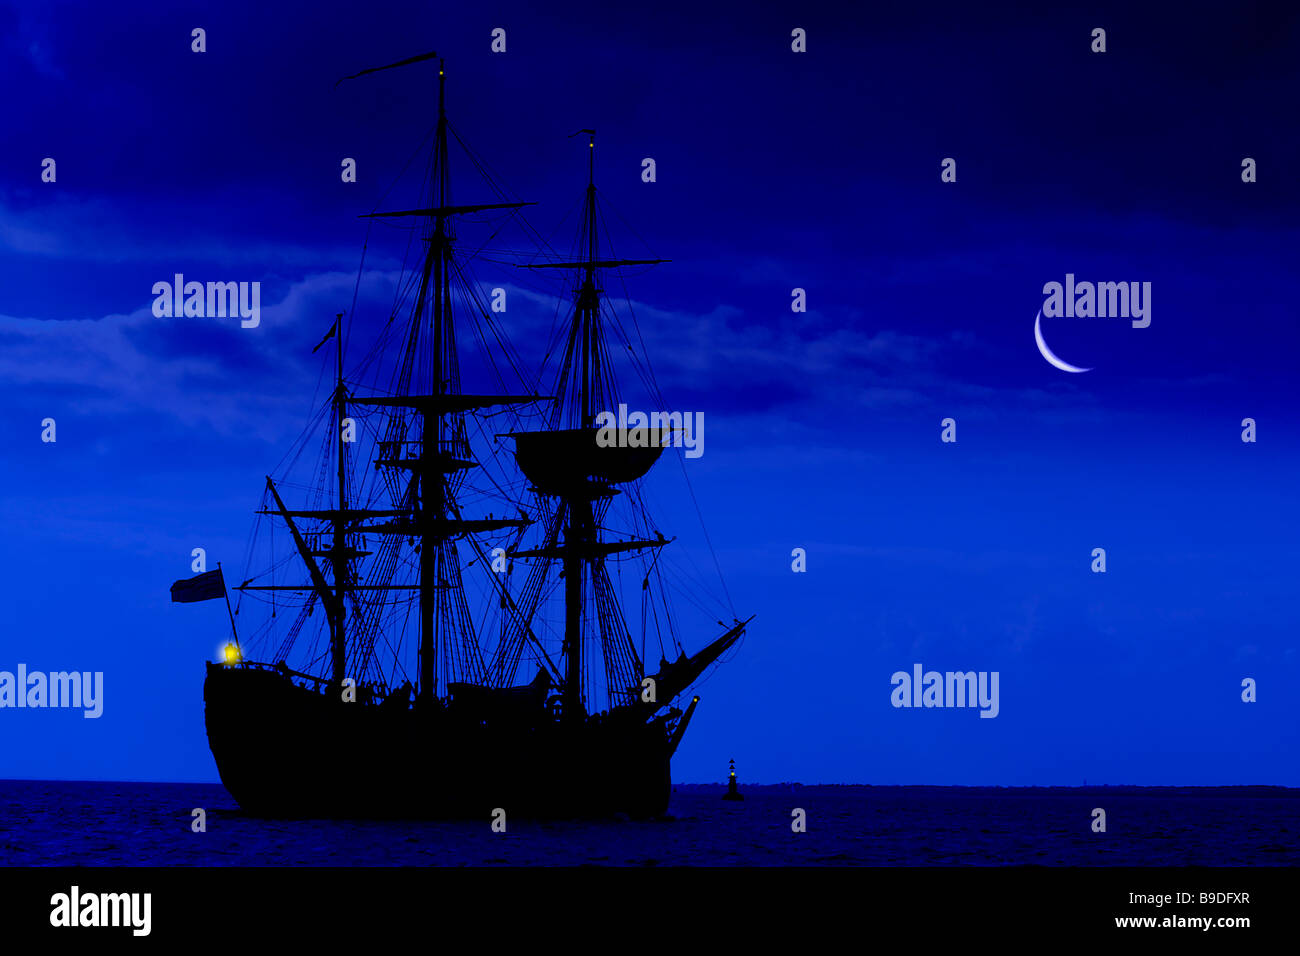 awesome,amazing,big,biggest,colossal,moon,rise,Barque,gaffer,Replica of, James Cook,gaffer,Cook's ship, Endeavour, - Stock Image